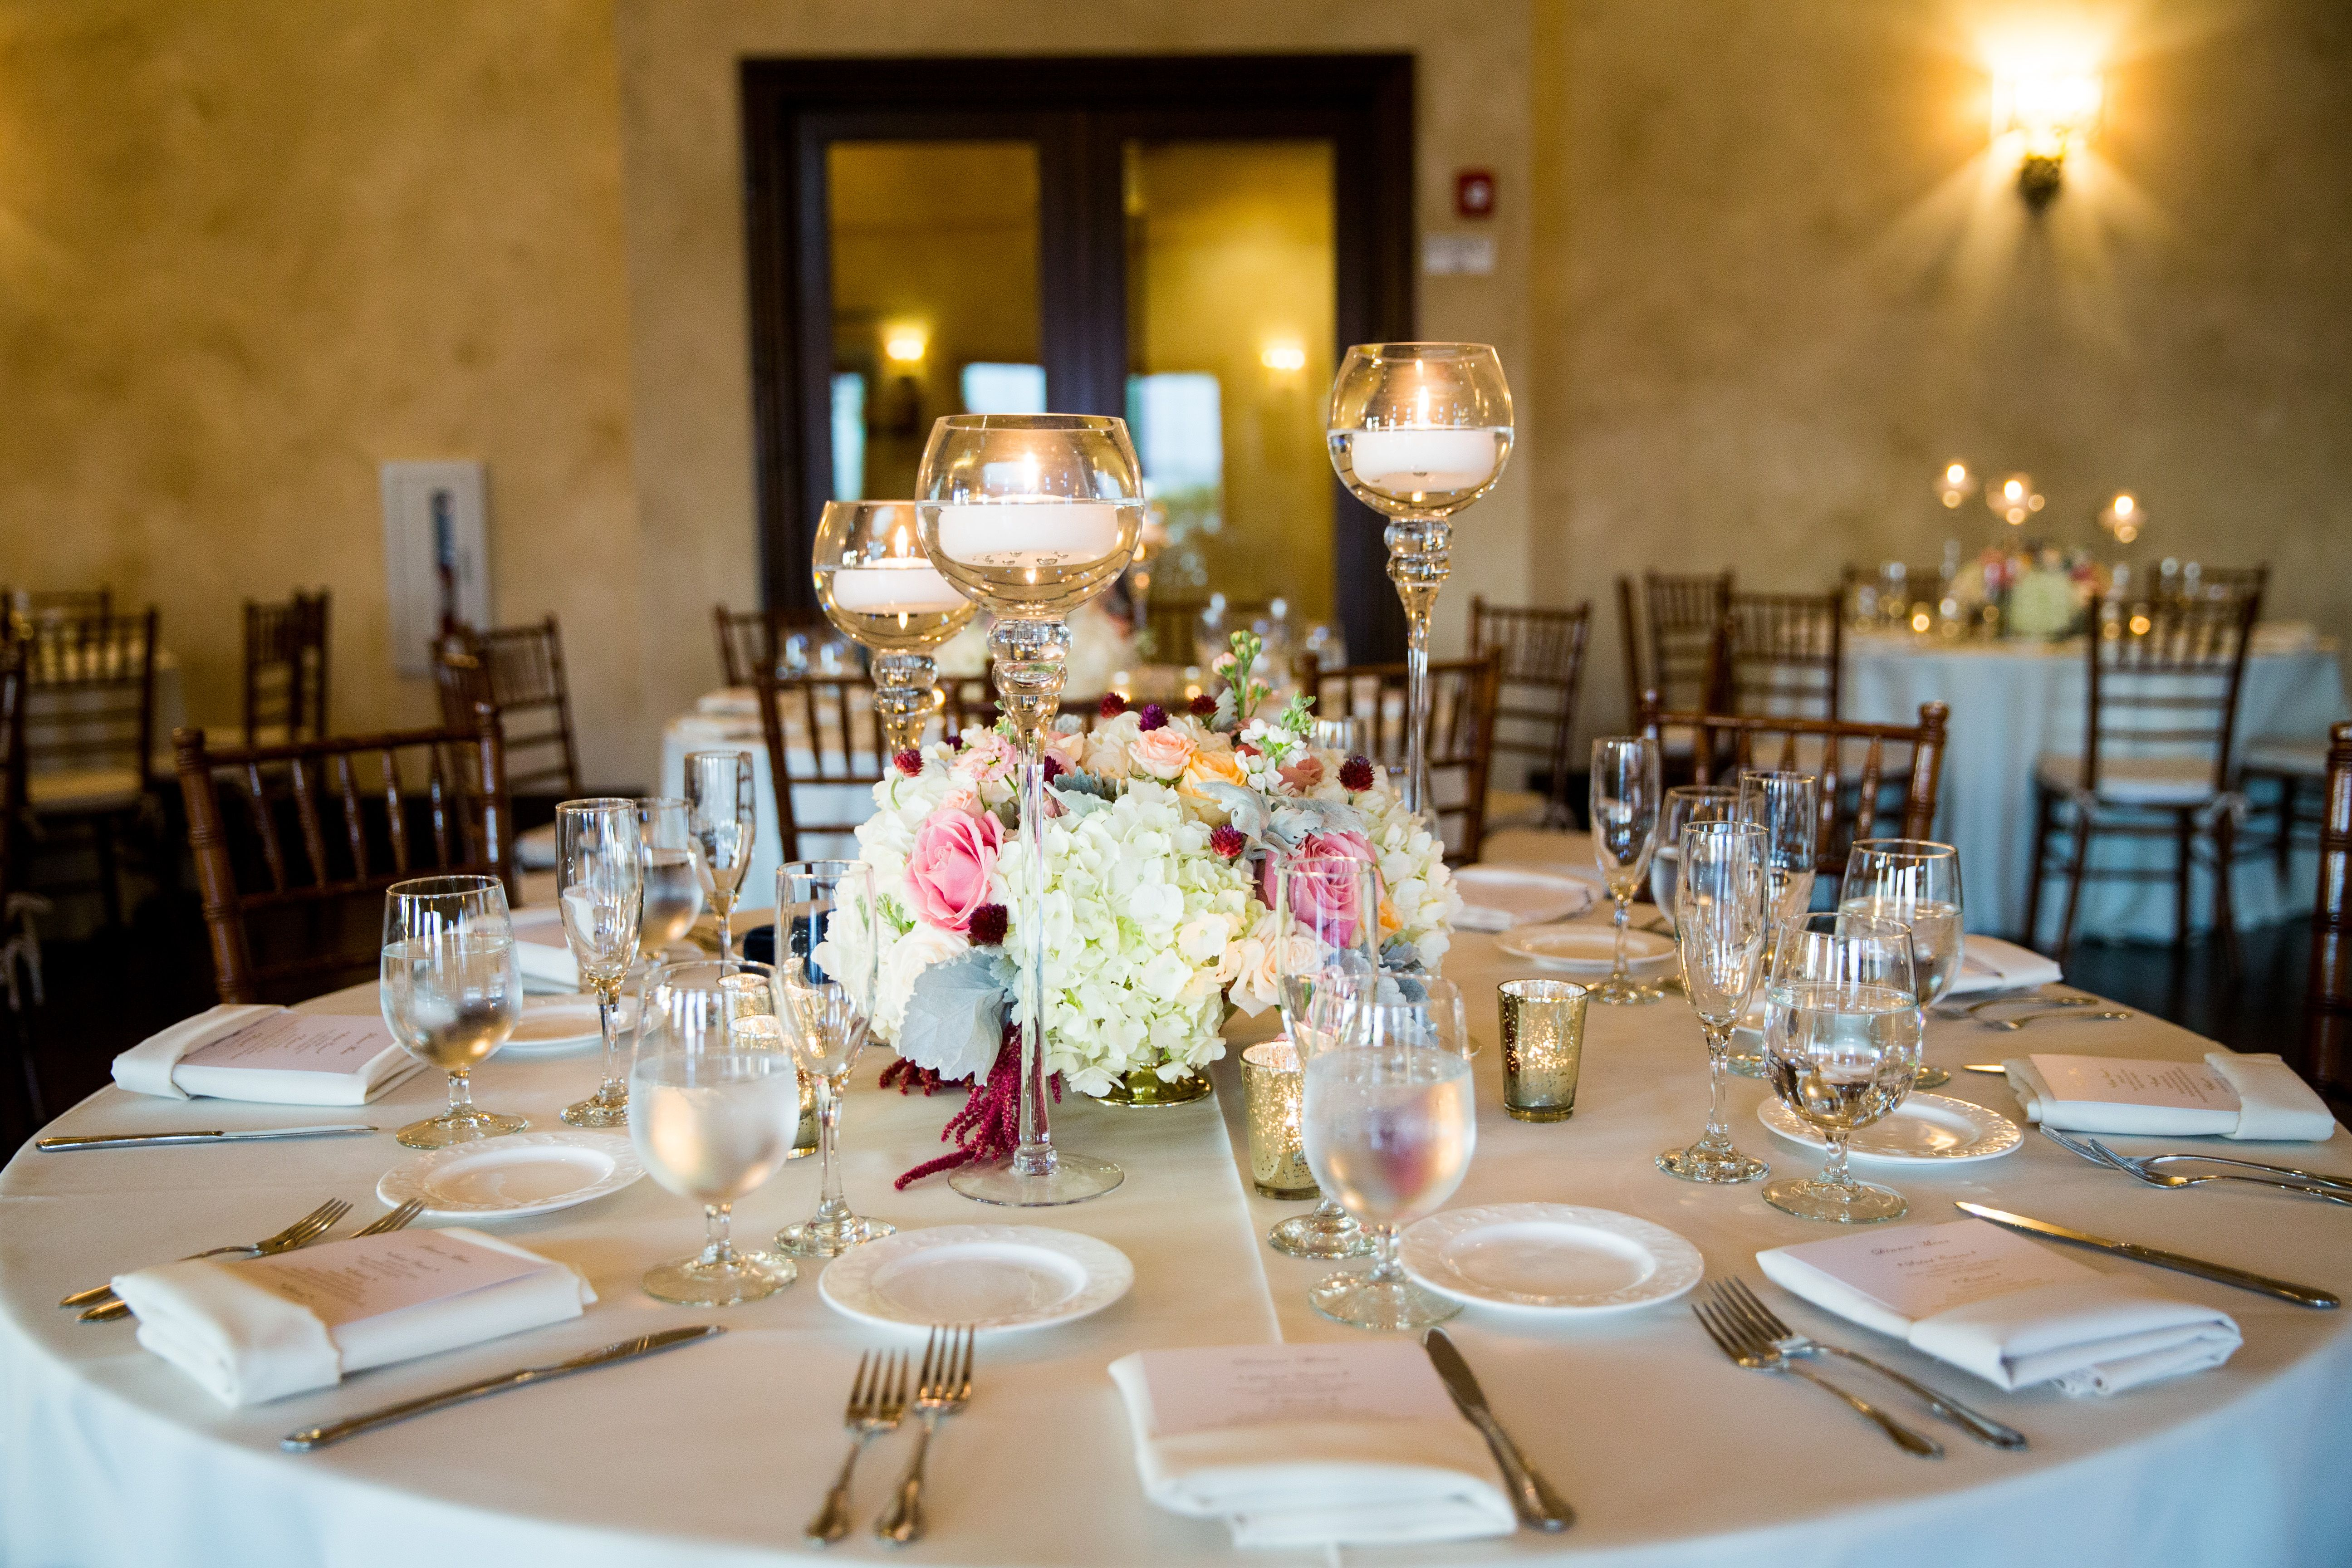 Wedding decorations without flowers  Beautiful Centerpieces with candles and flowers  Romantic and Not